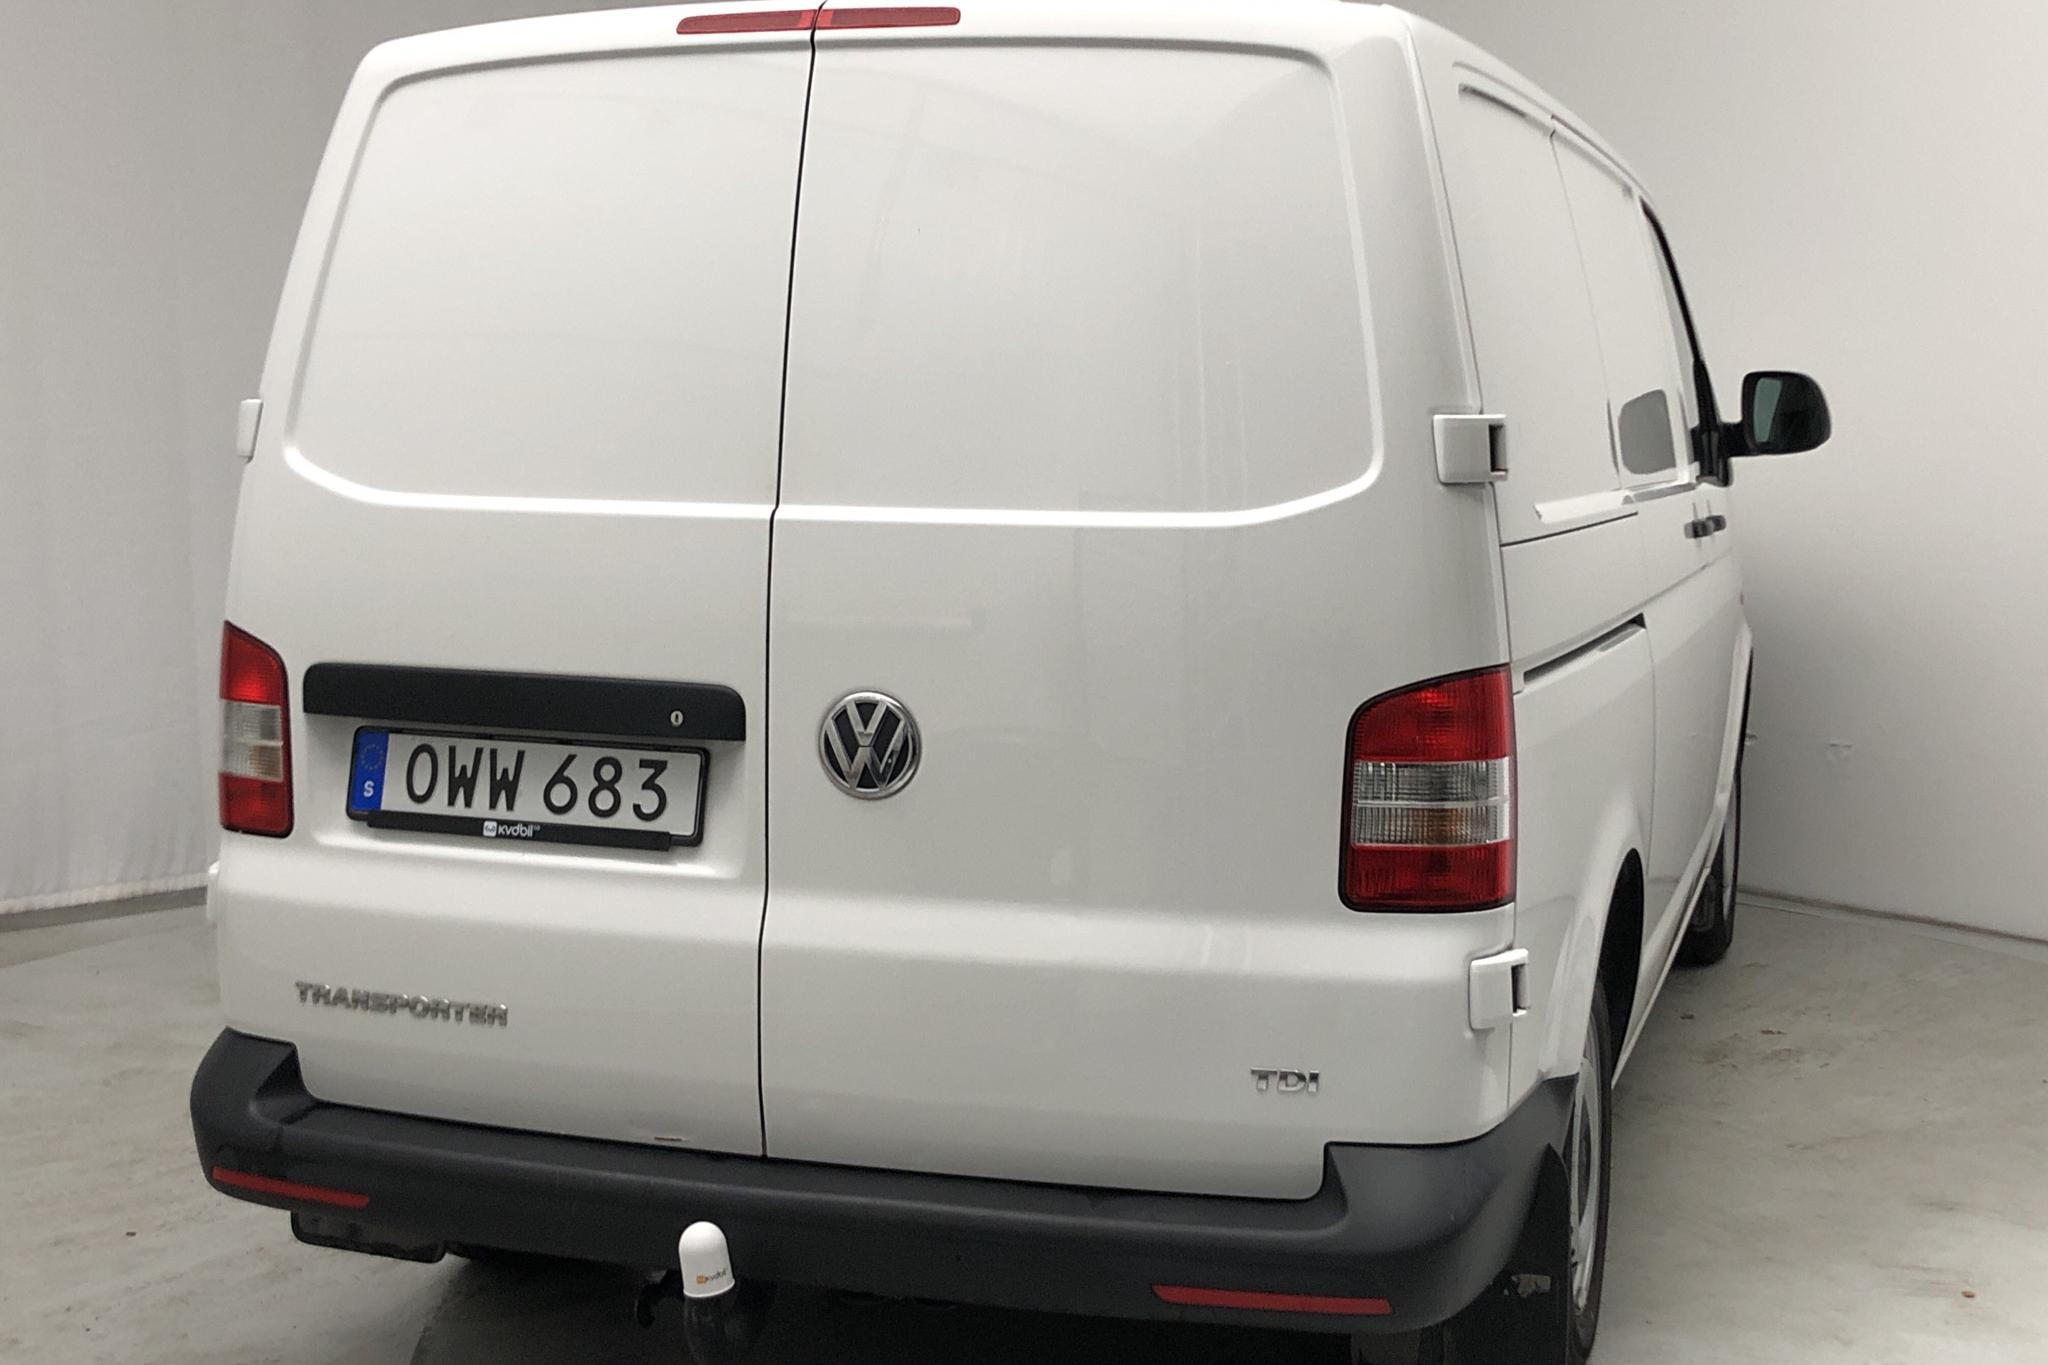 VW Transporter T5 2.0 TDI (102hk) - 0 km - Manual - white - 2015